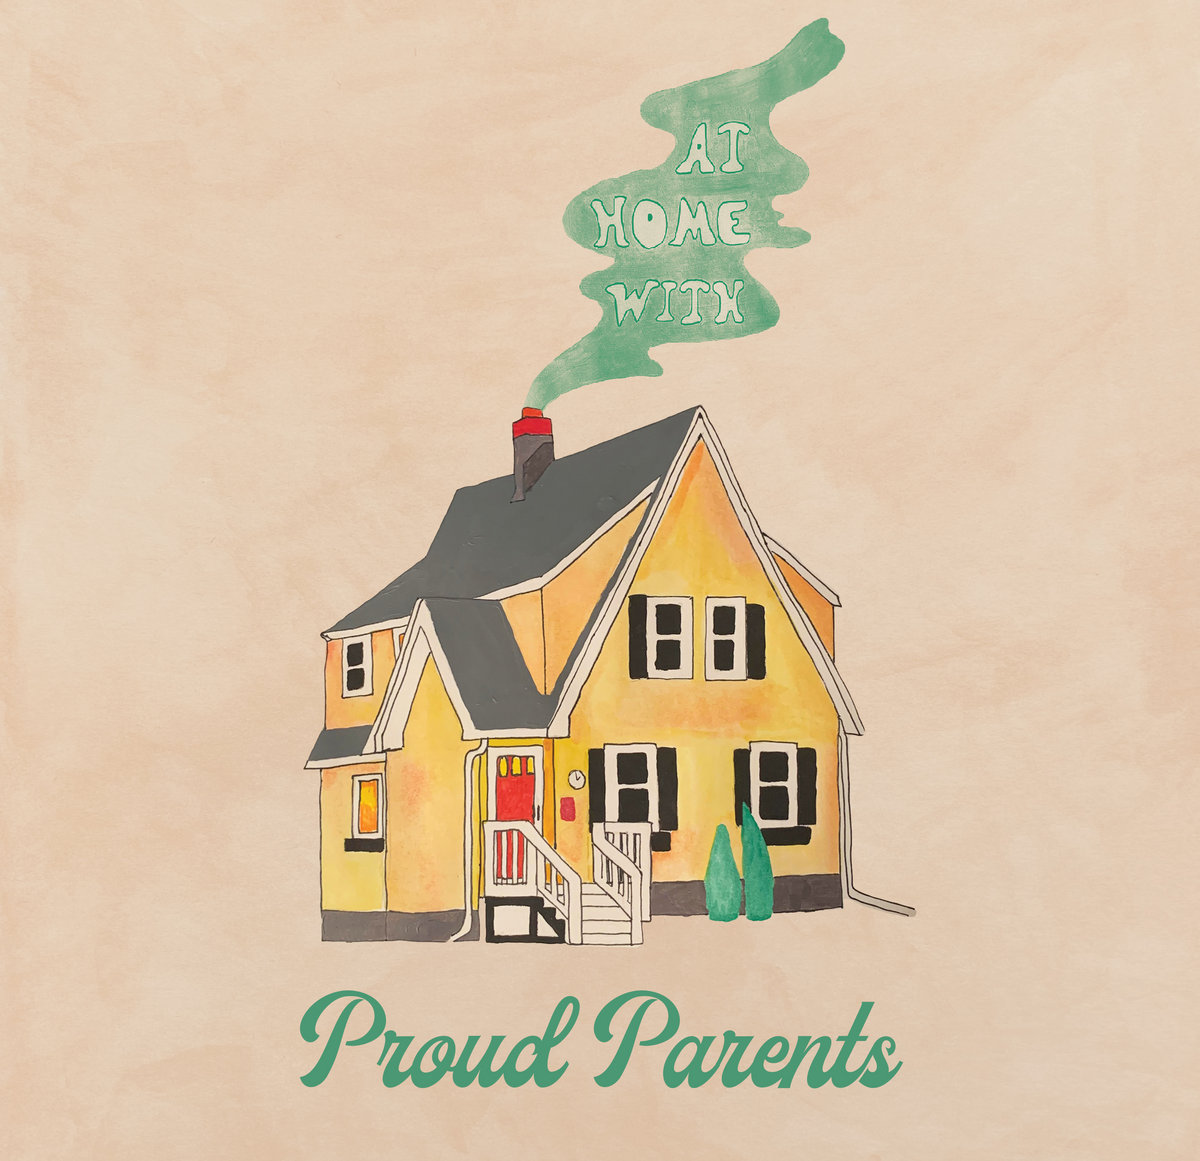 Proud Parents - At Home With...